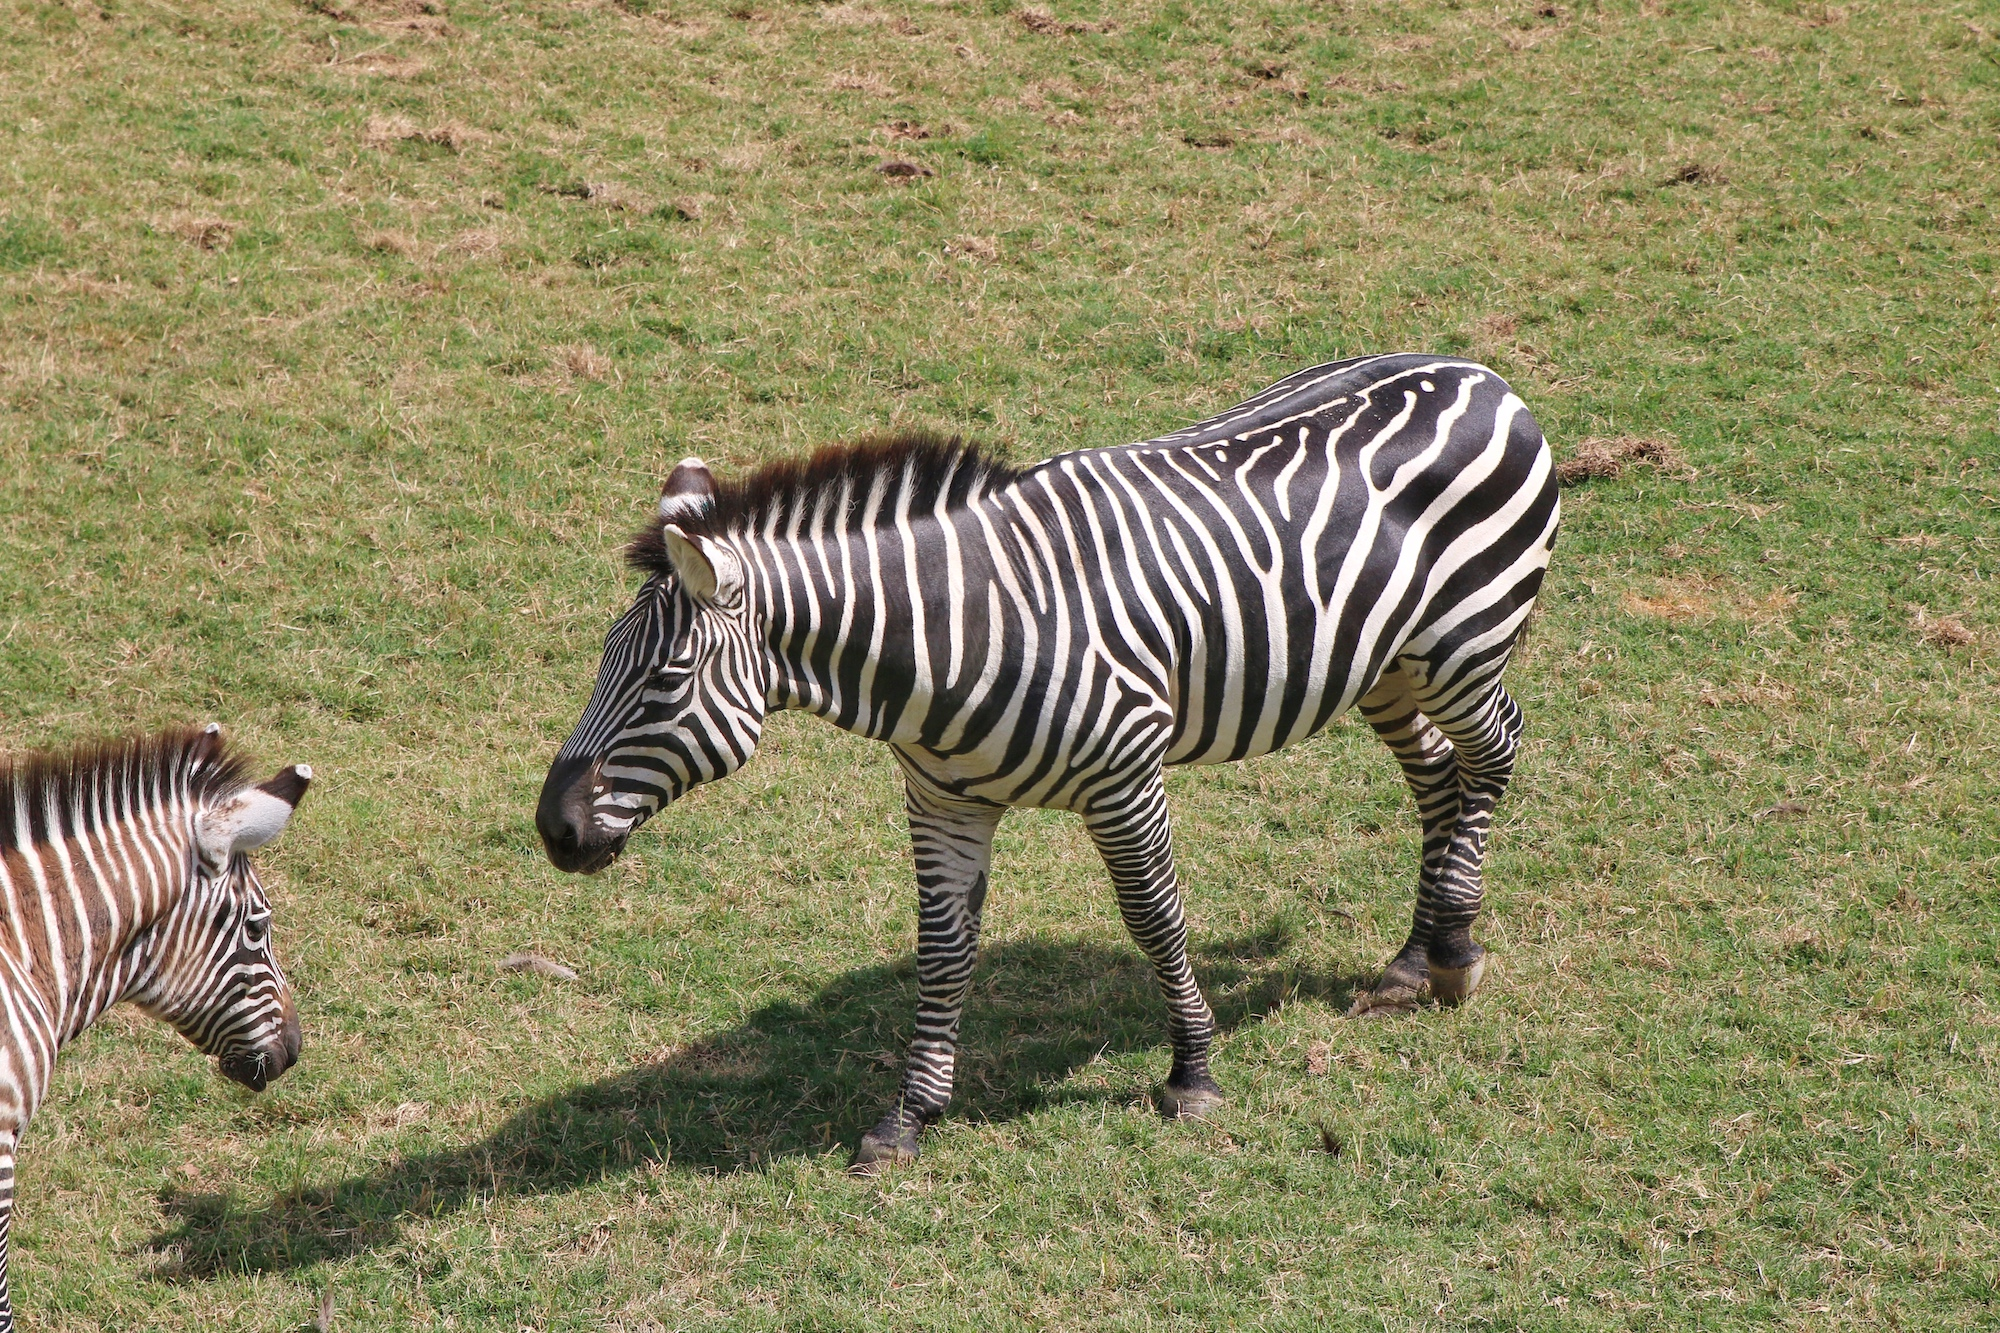 zebra habitat at Fort Worth zoo